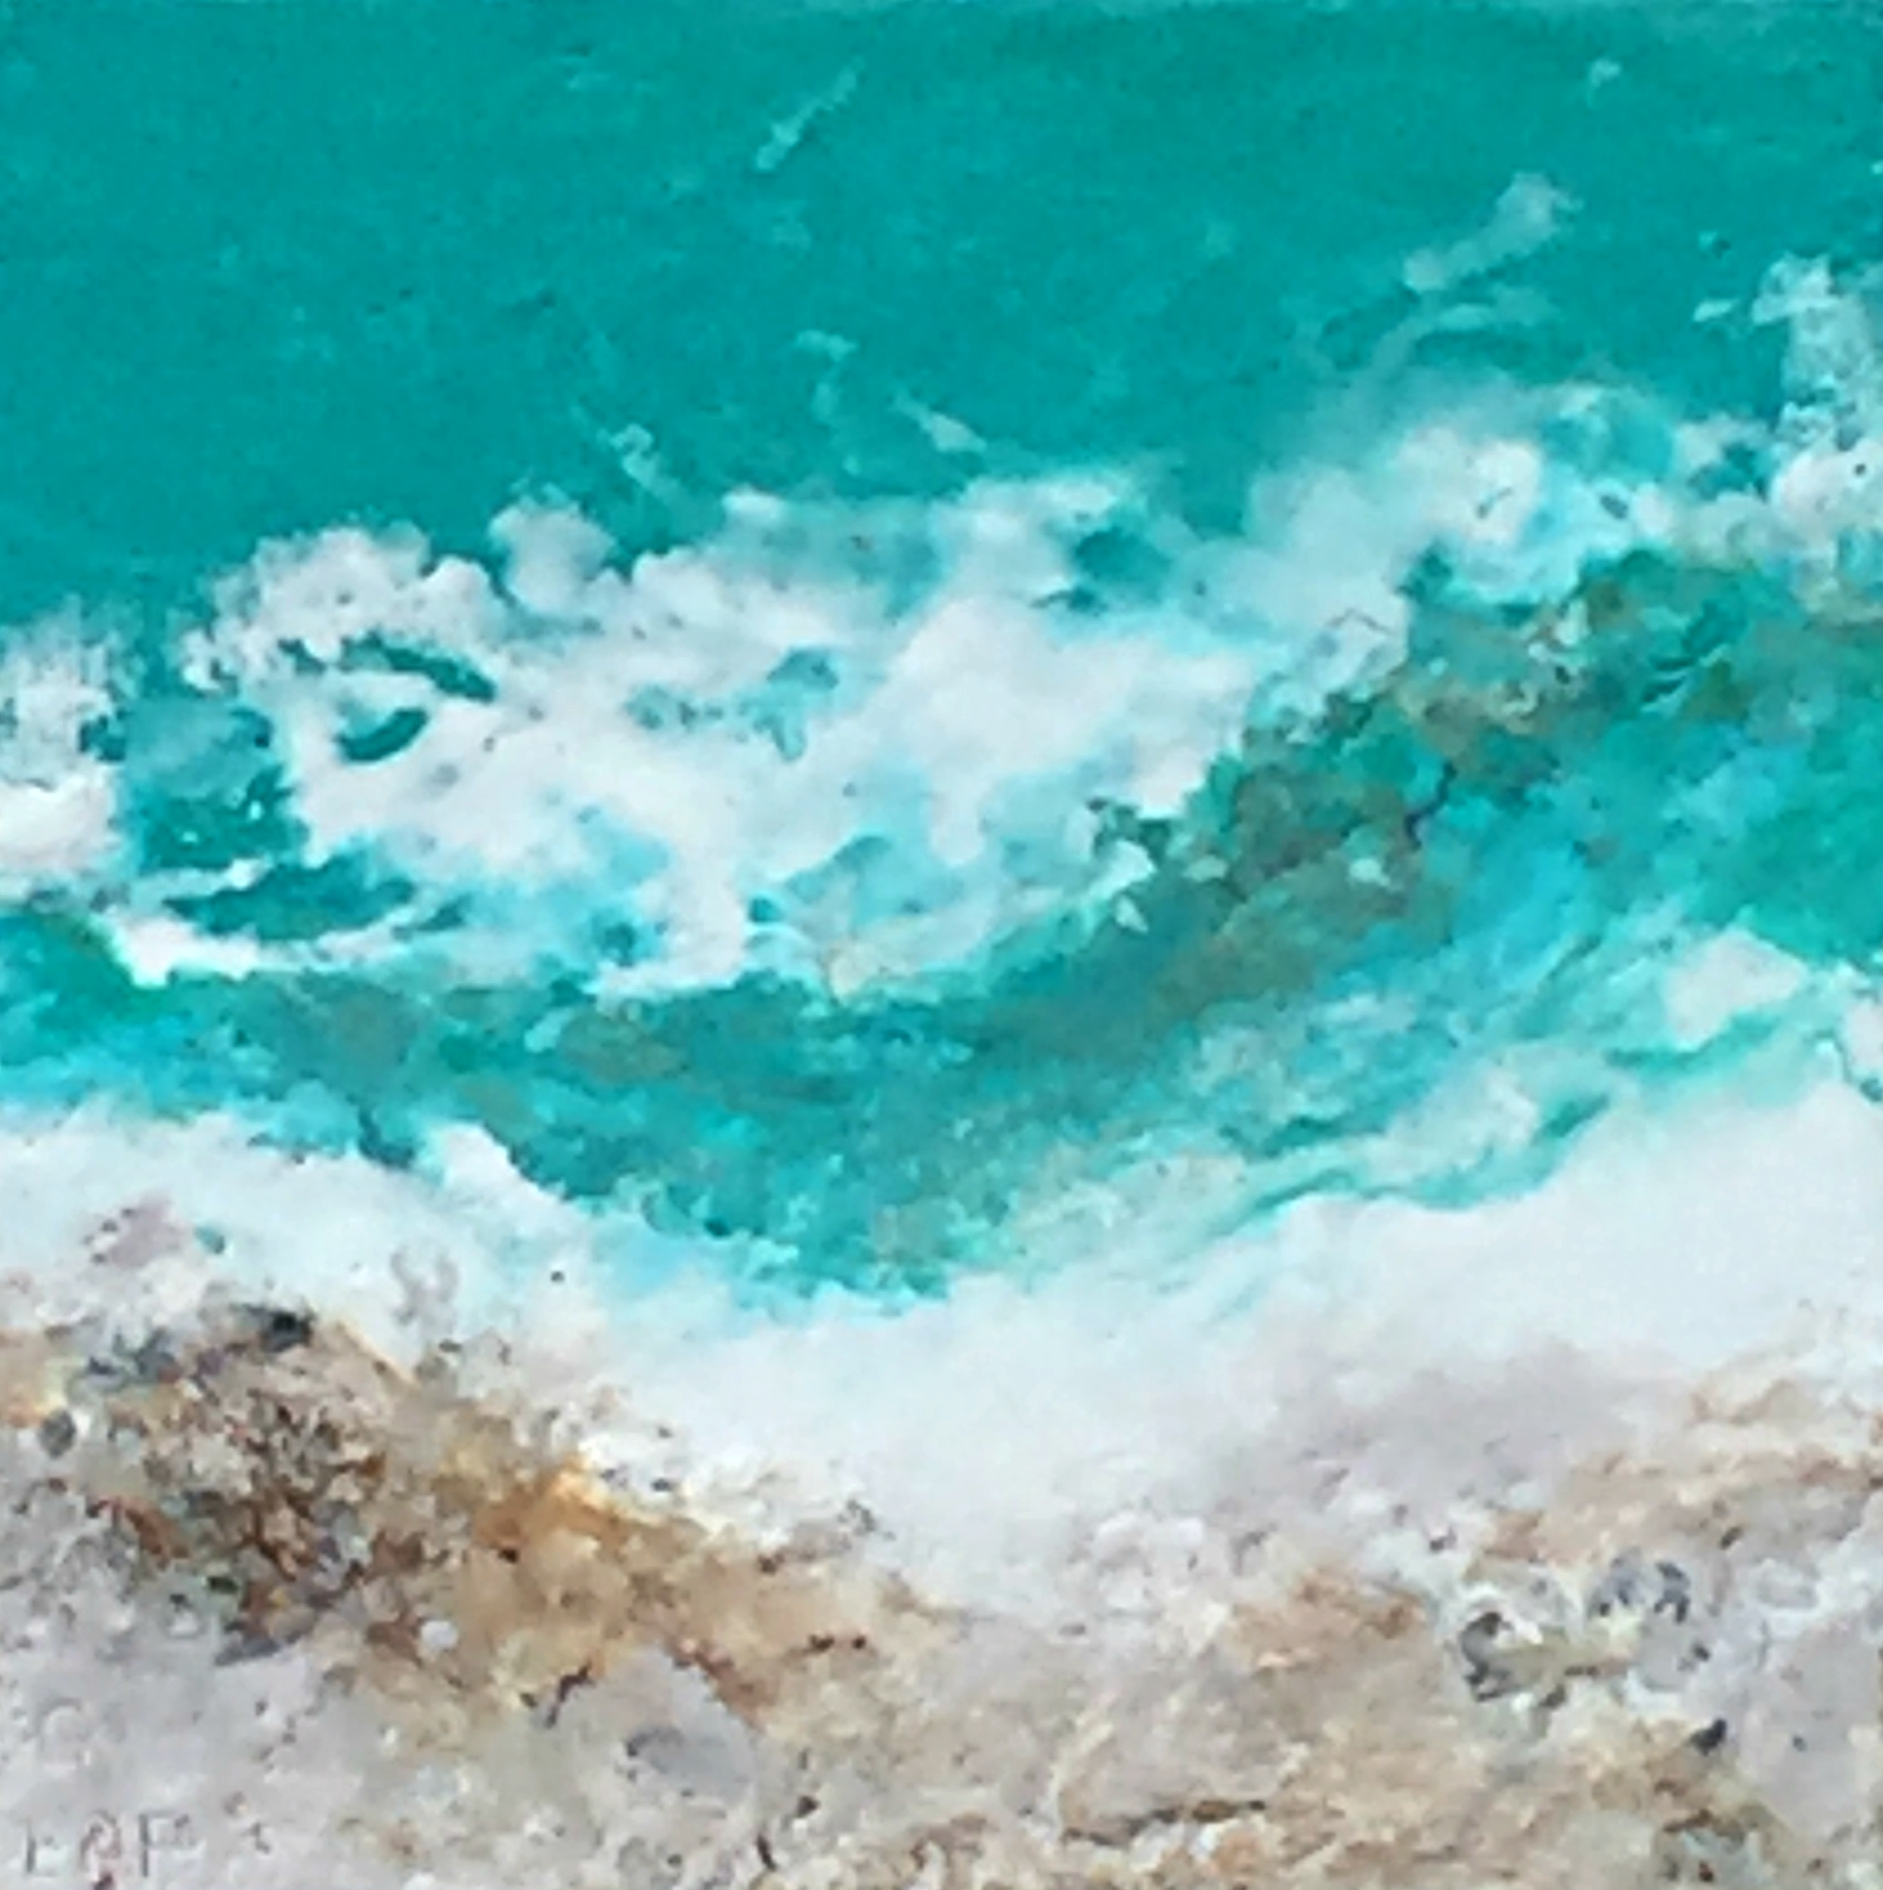 Warm Sea Breeze 1, encaustic ocean painting by Lee Anne LaForge | Effusion Art Gallery + Cast Glass Studio, Invermere BC